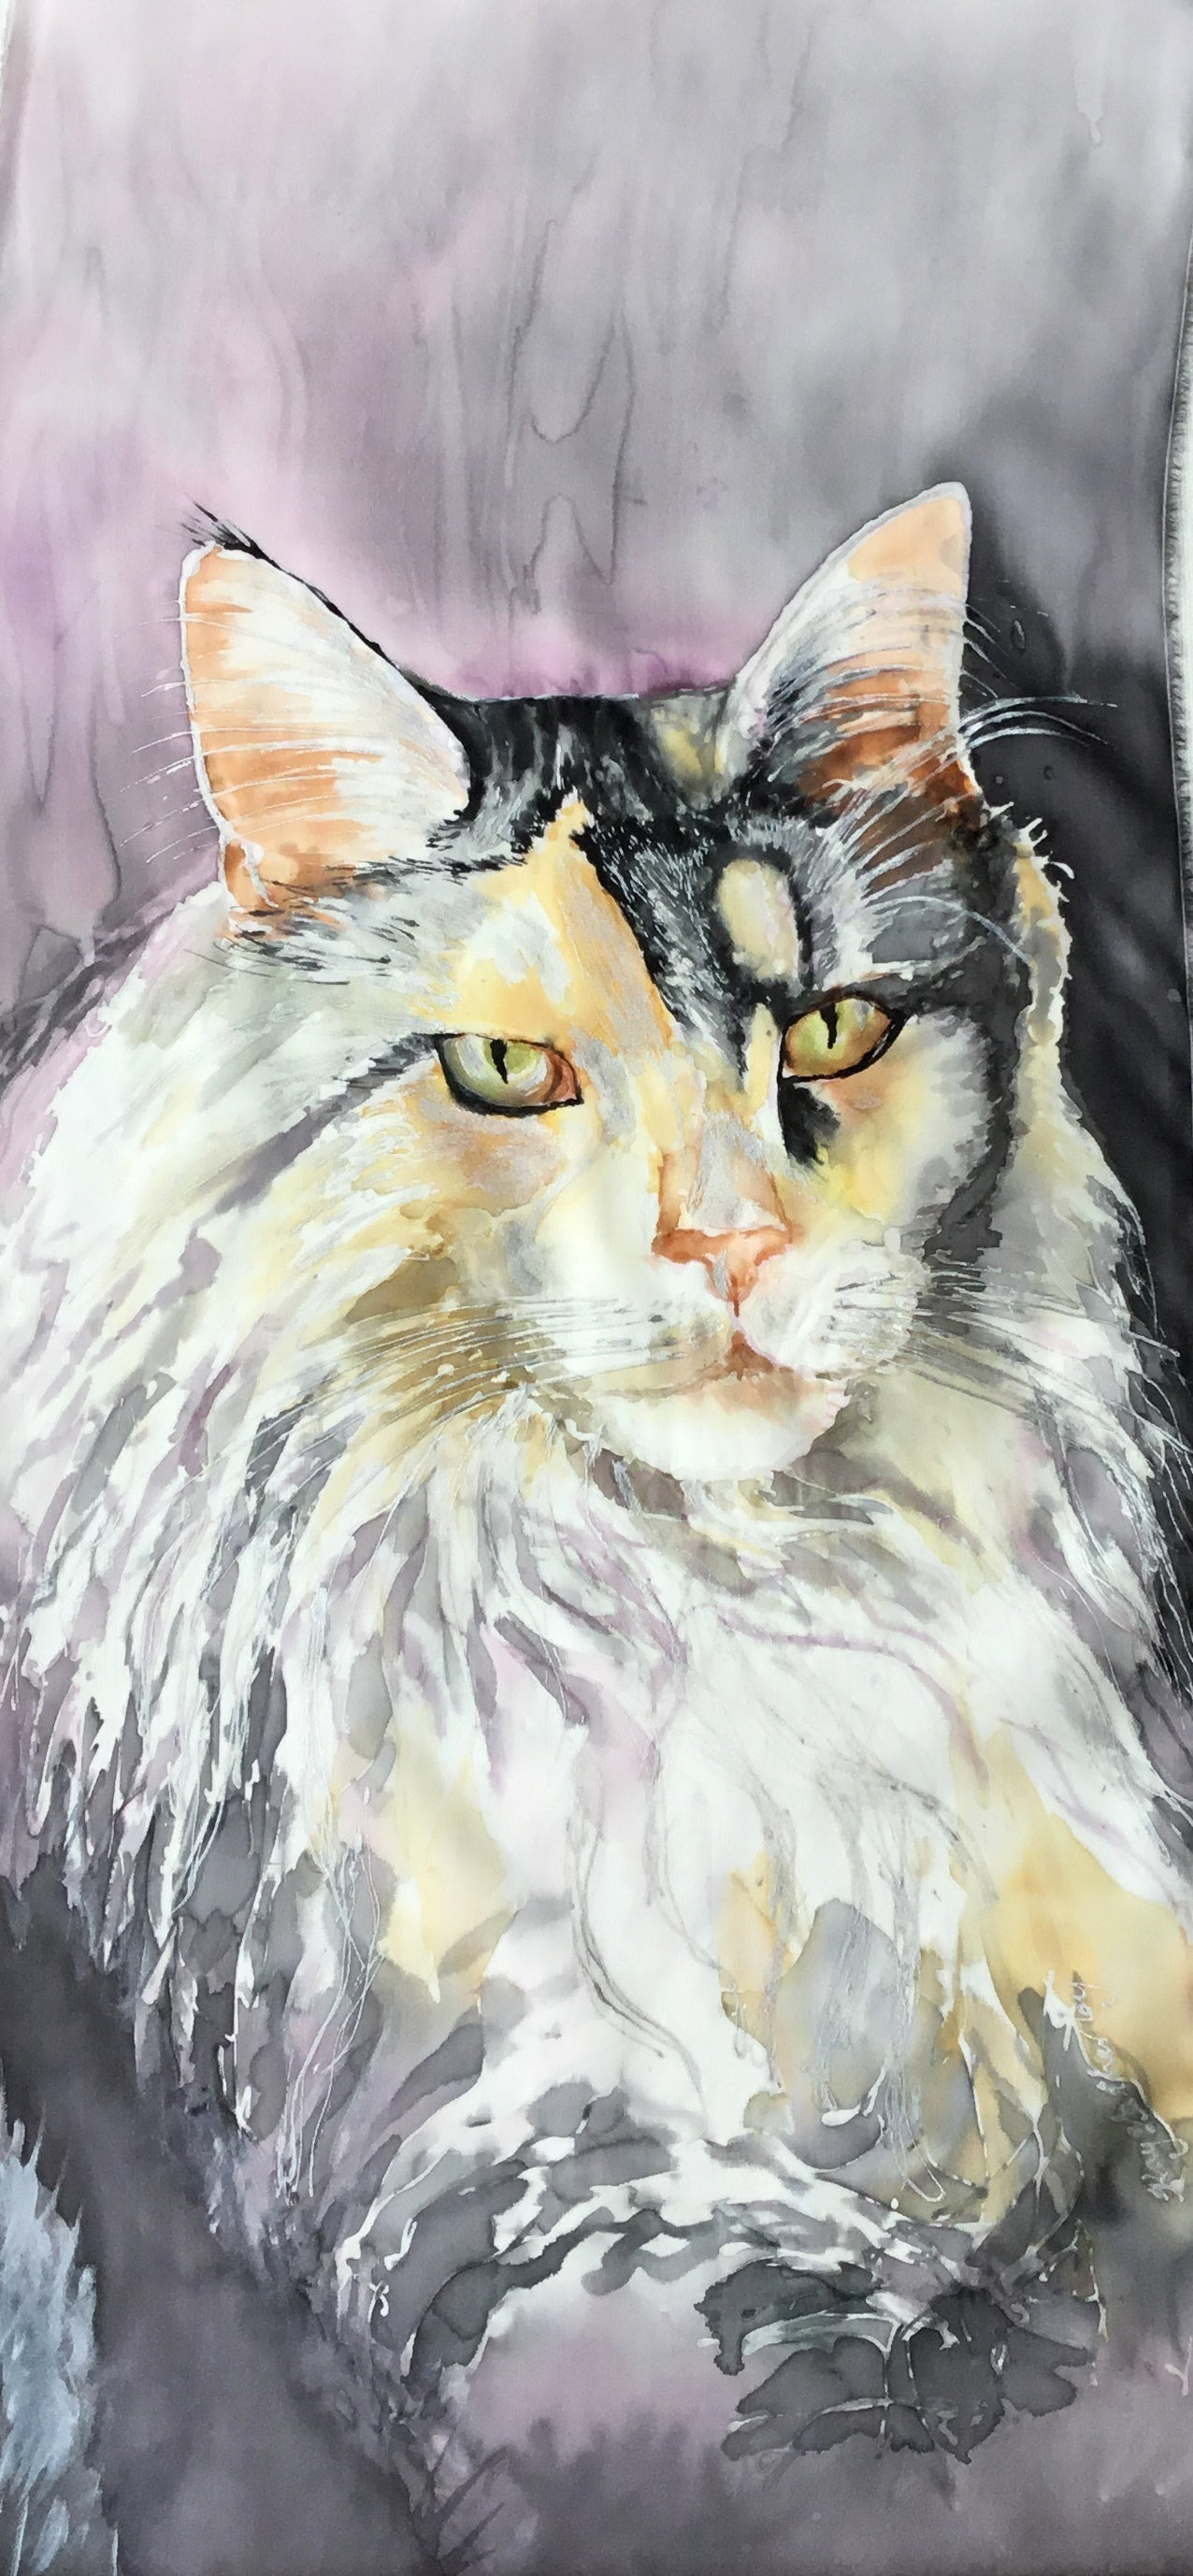 Commissioned Silk Painting of a Maine Coon cat. Bespoke Silk Art - Satherley Silks NZ